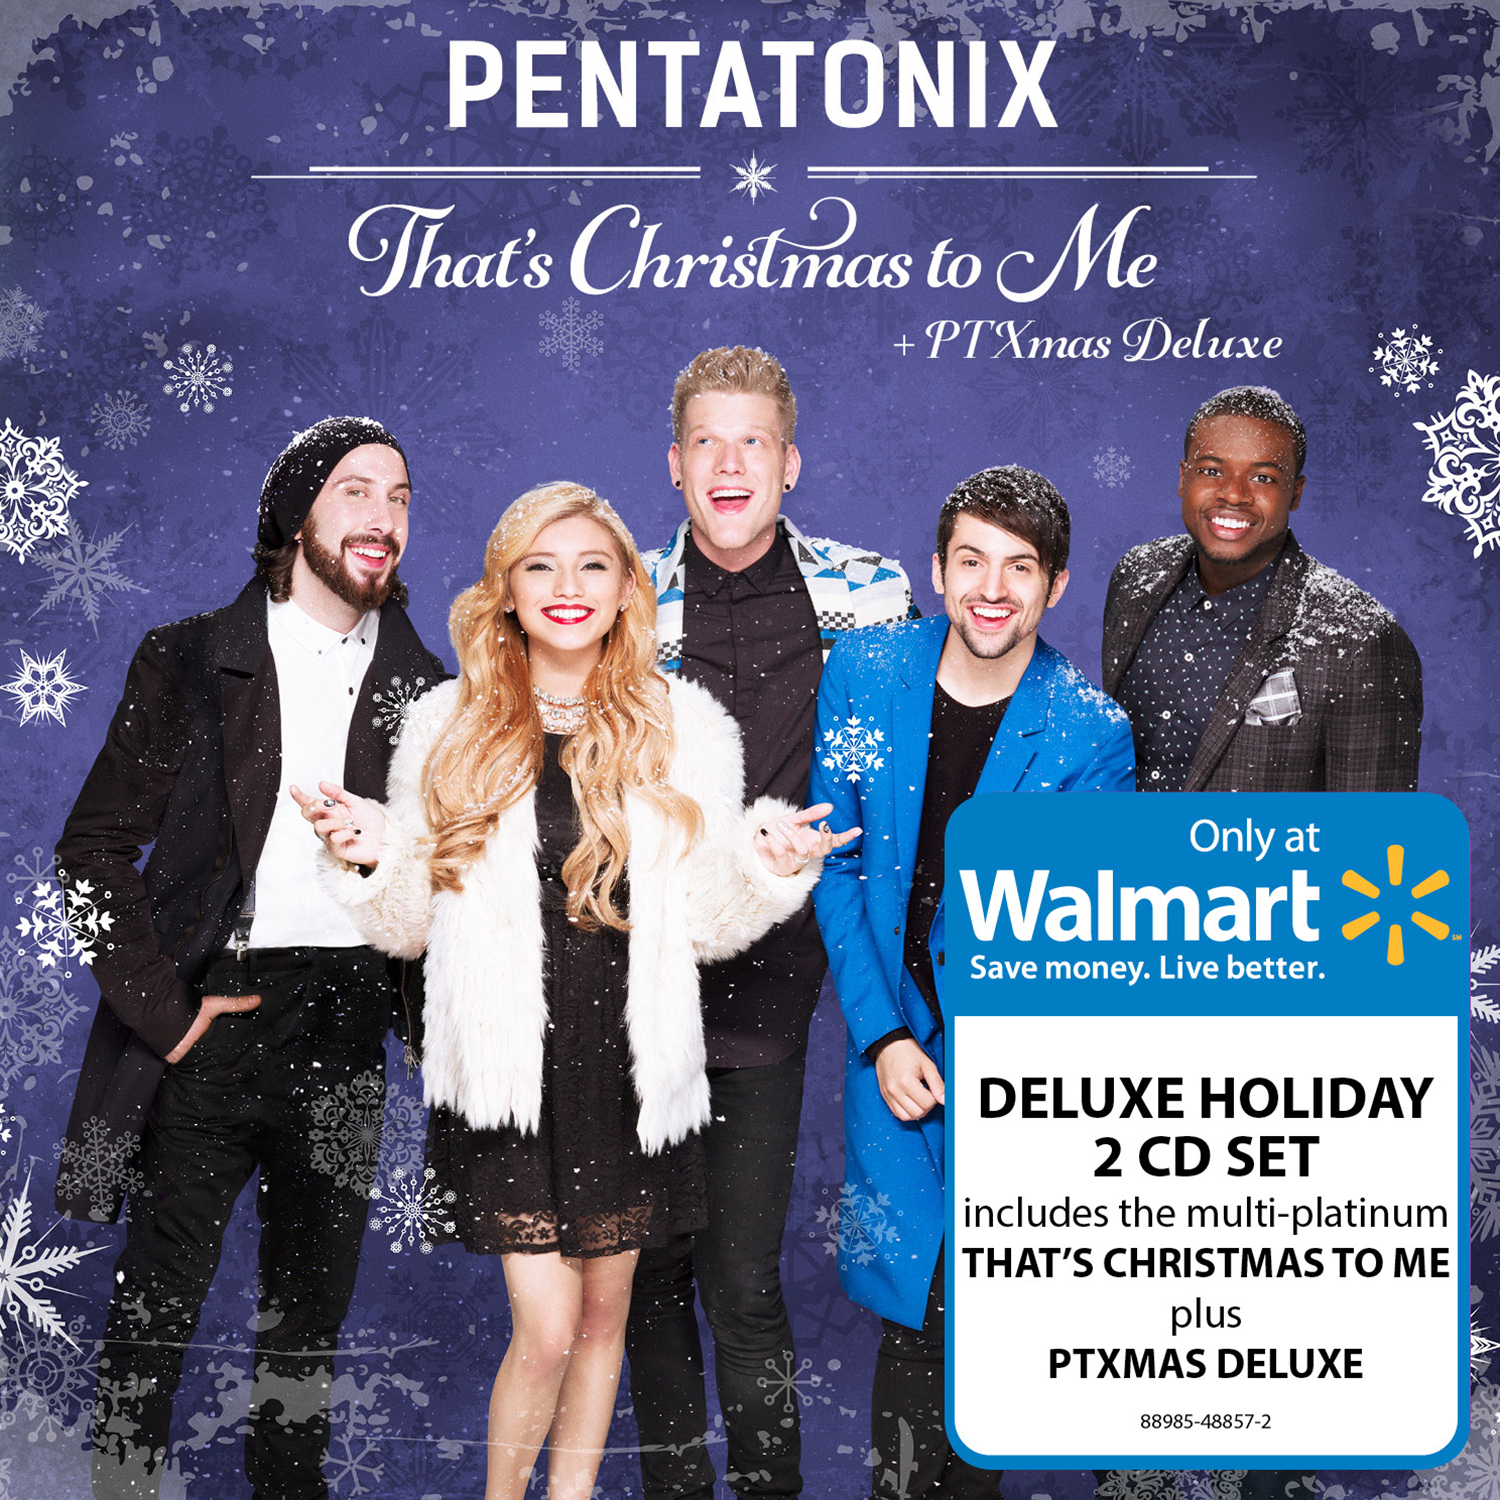 Pentatonix Christmas Deluxe.Pentatonix That S Christmas To Me Ptxmas Deluxe Walmart Exclusive Cd Walmart Com